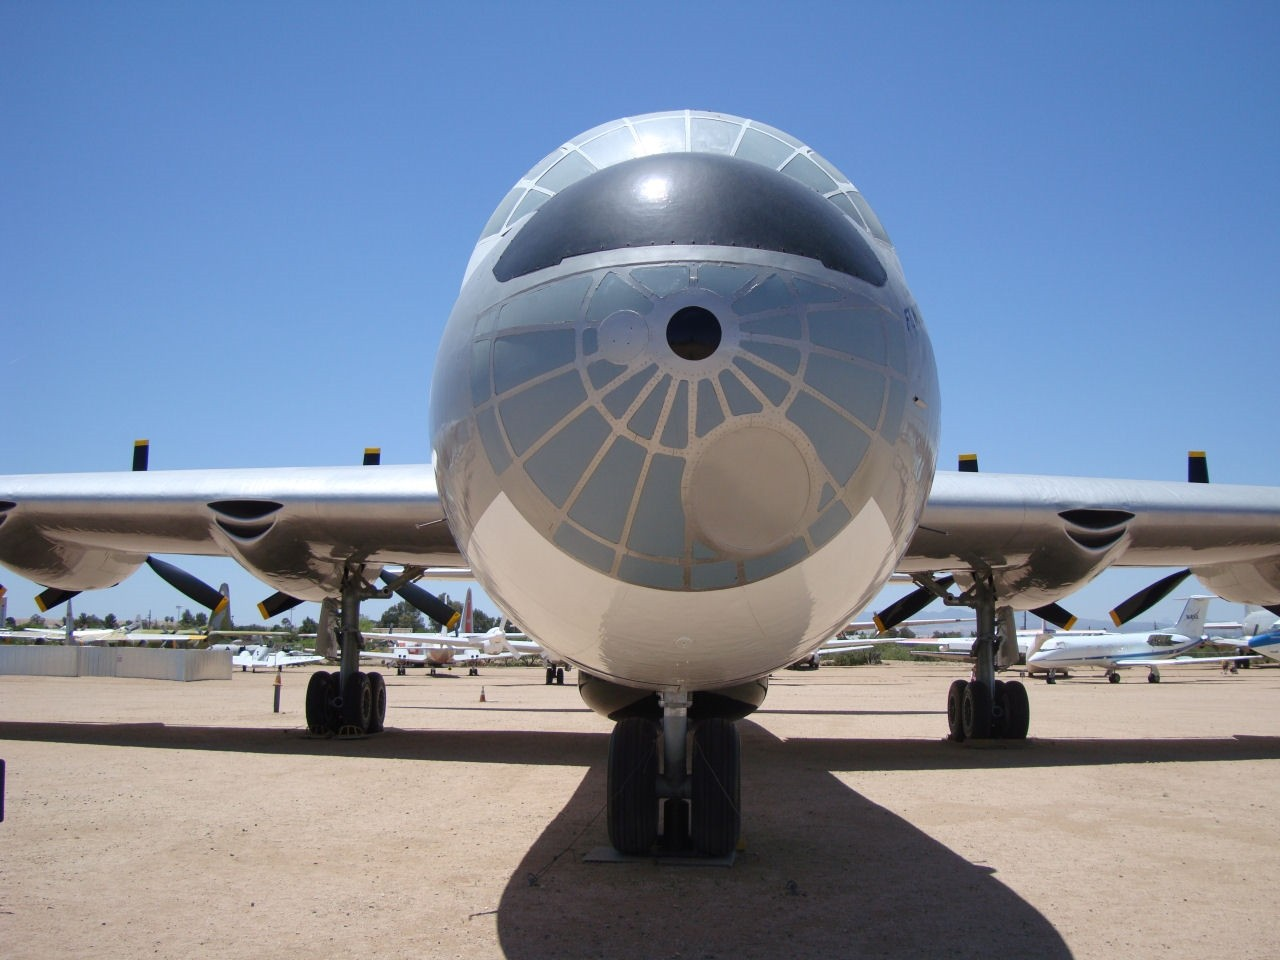 Convair B-36 Peacemaker - WalkAround